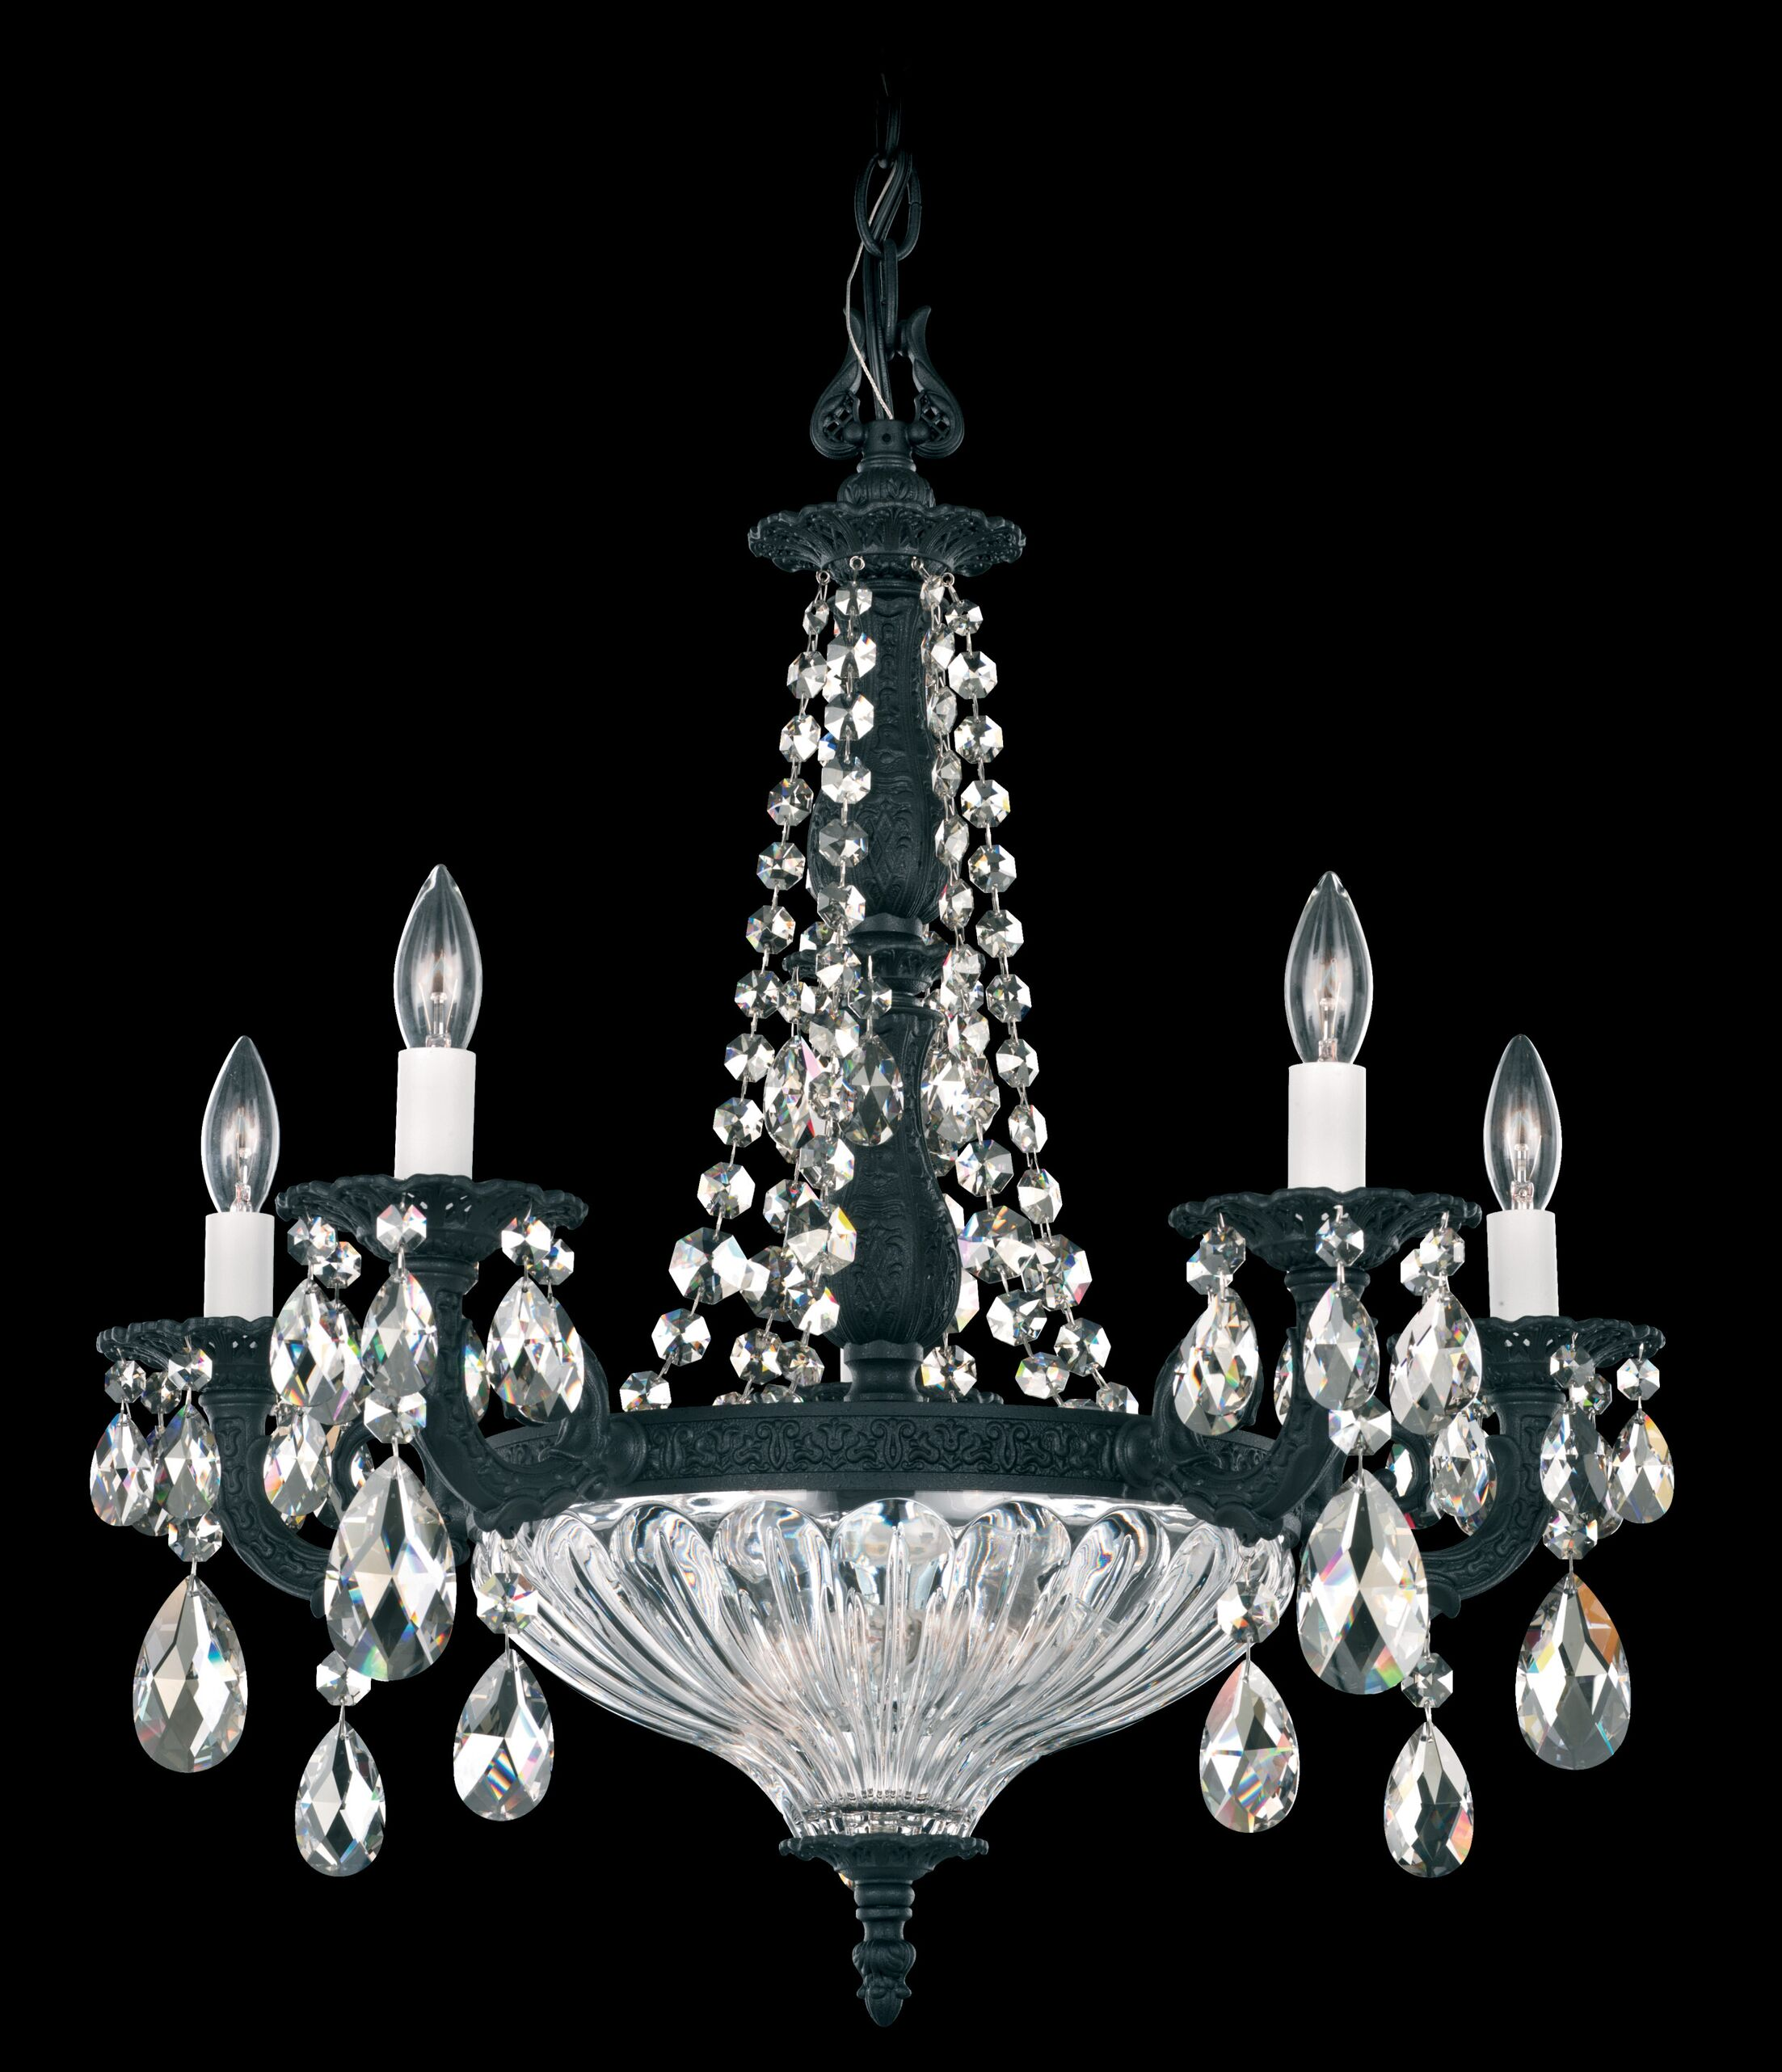 Milano 7-Light Chandelier Finish: Roman Silver, Crystal Color: Strass Silver Shade